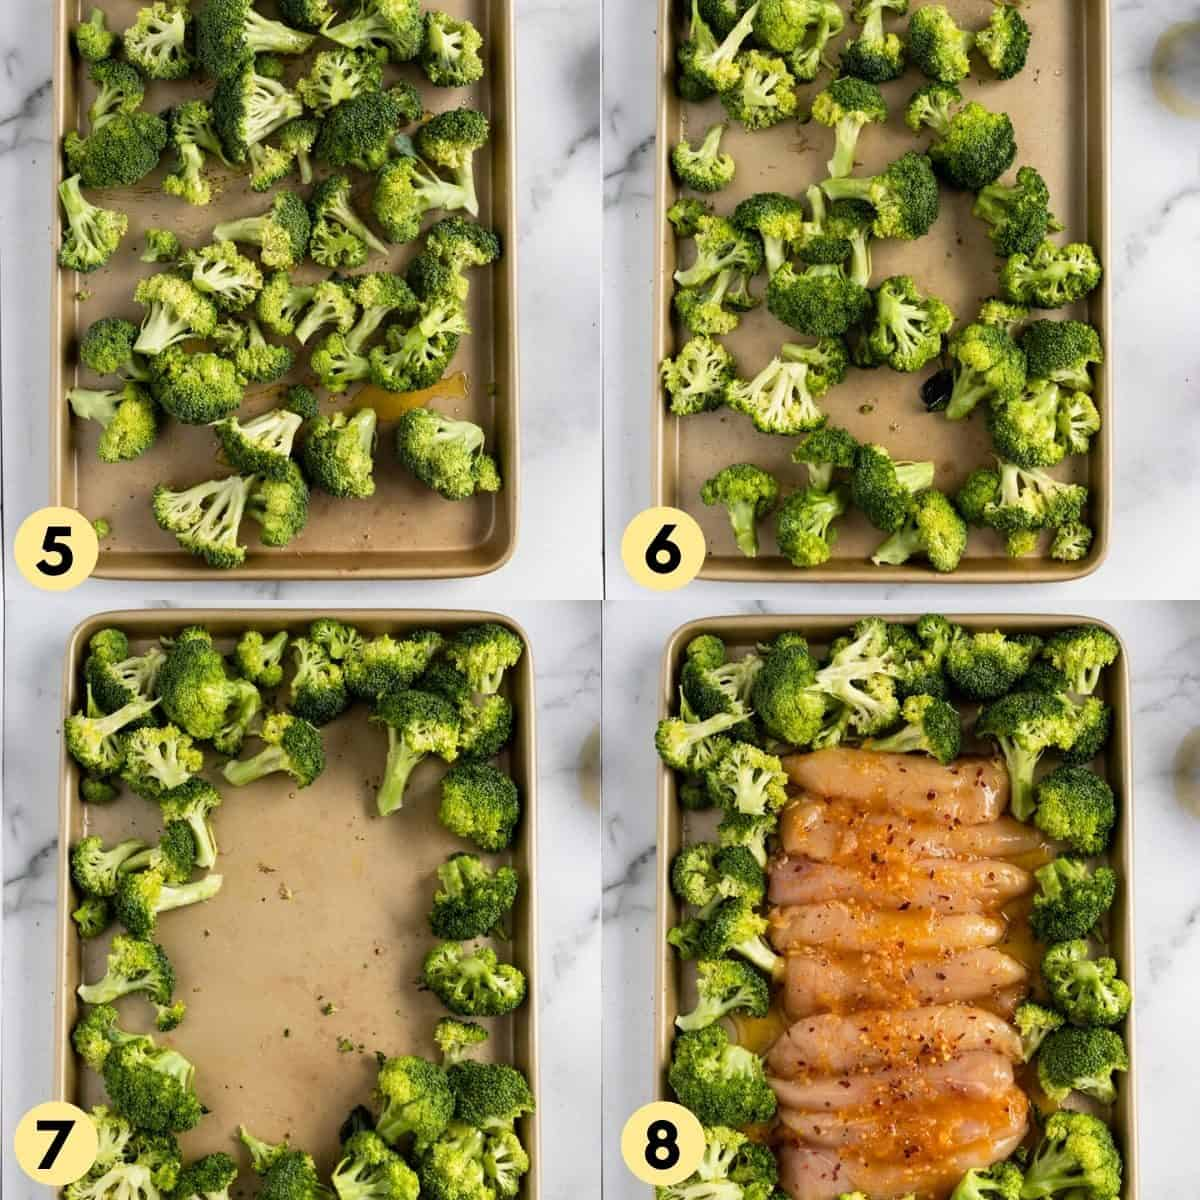 Broccoli and chicken on sheet pan before cooking.